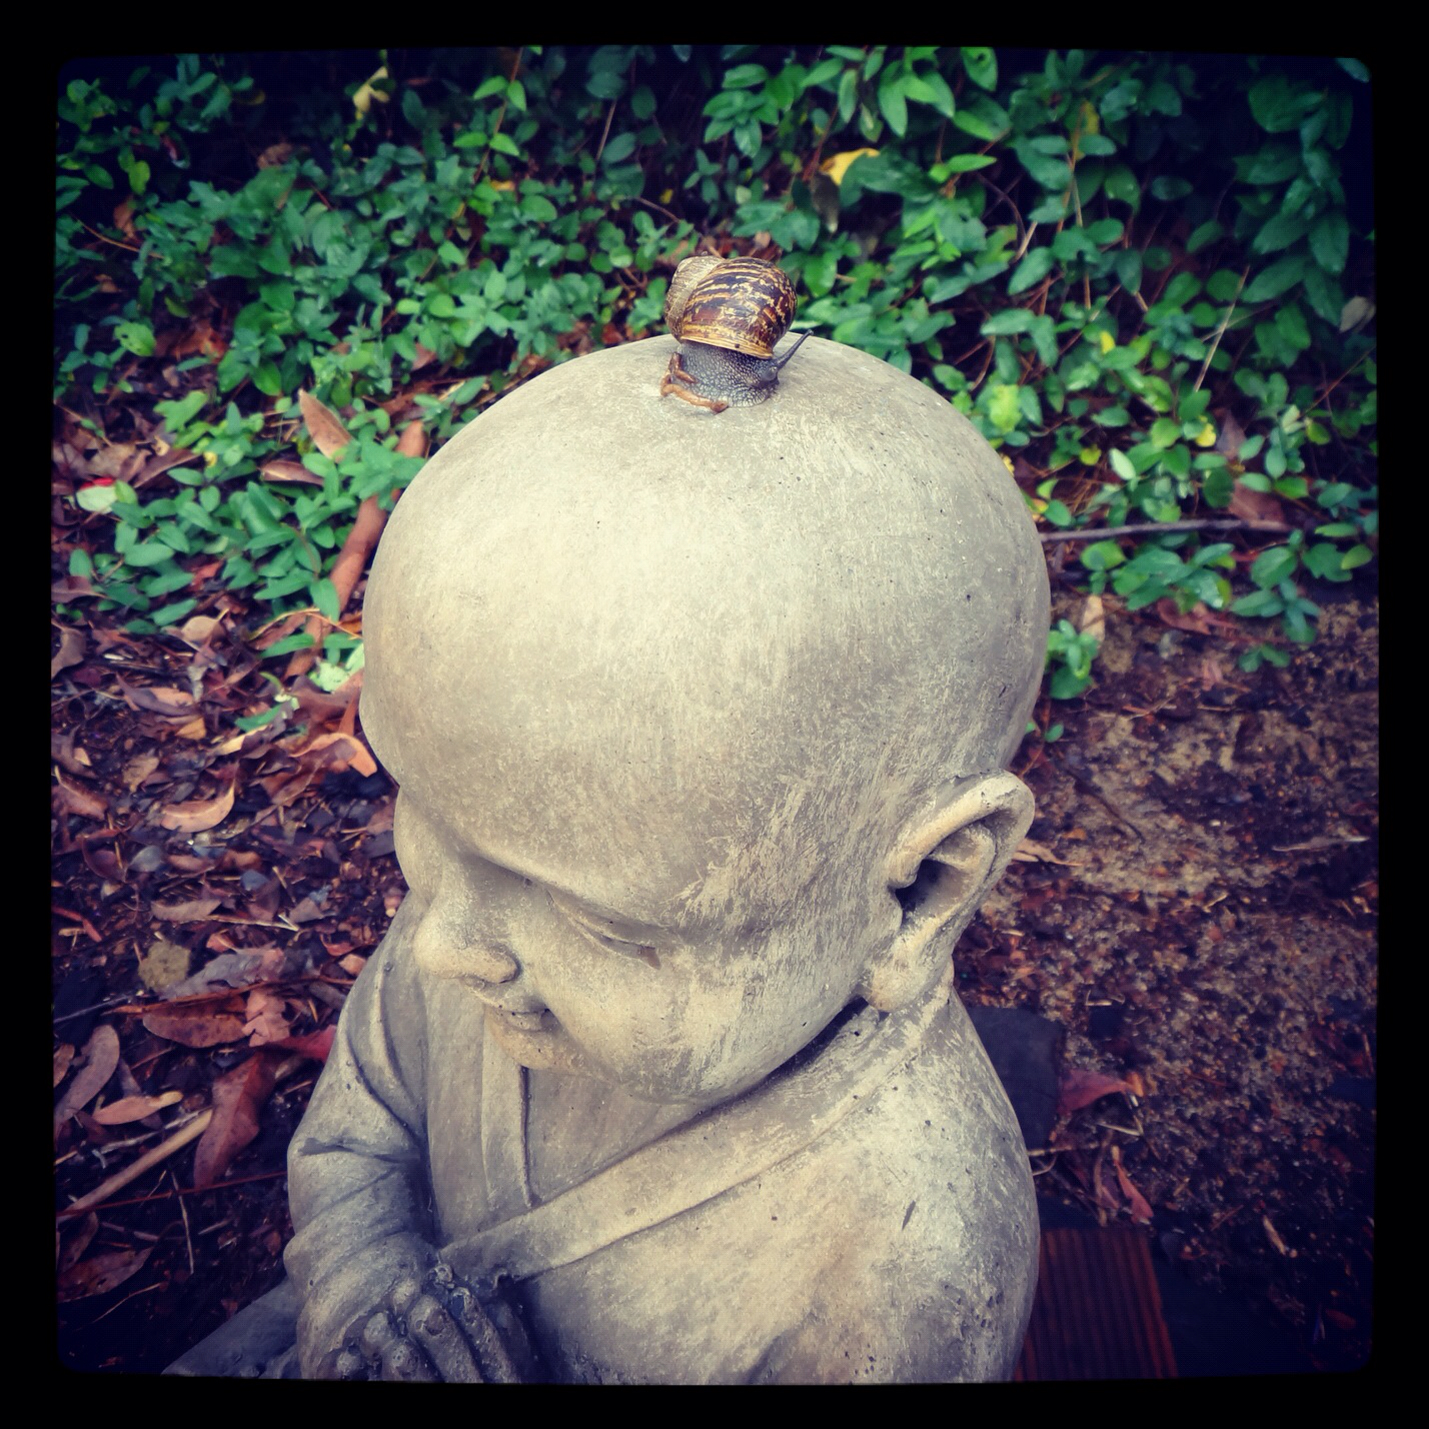 A snail looking down from atop the buddha's head! :)